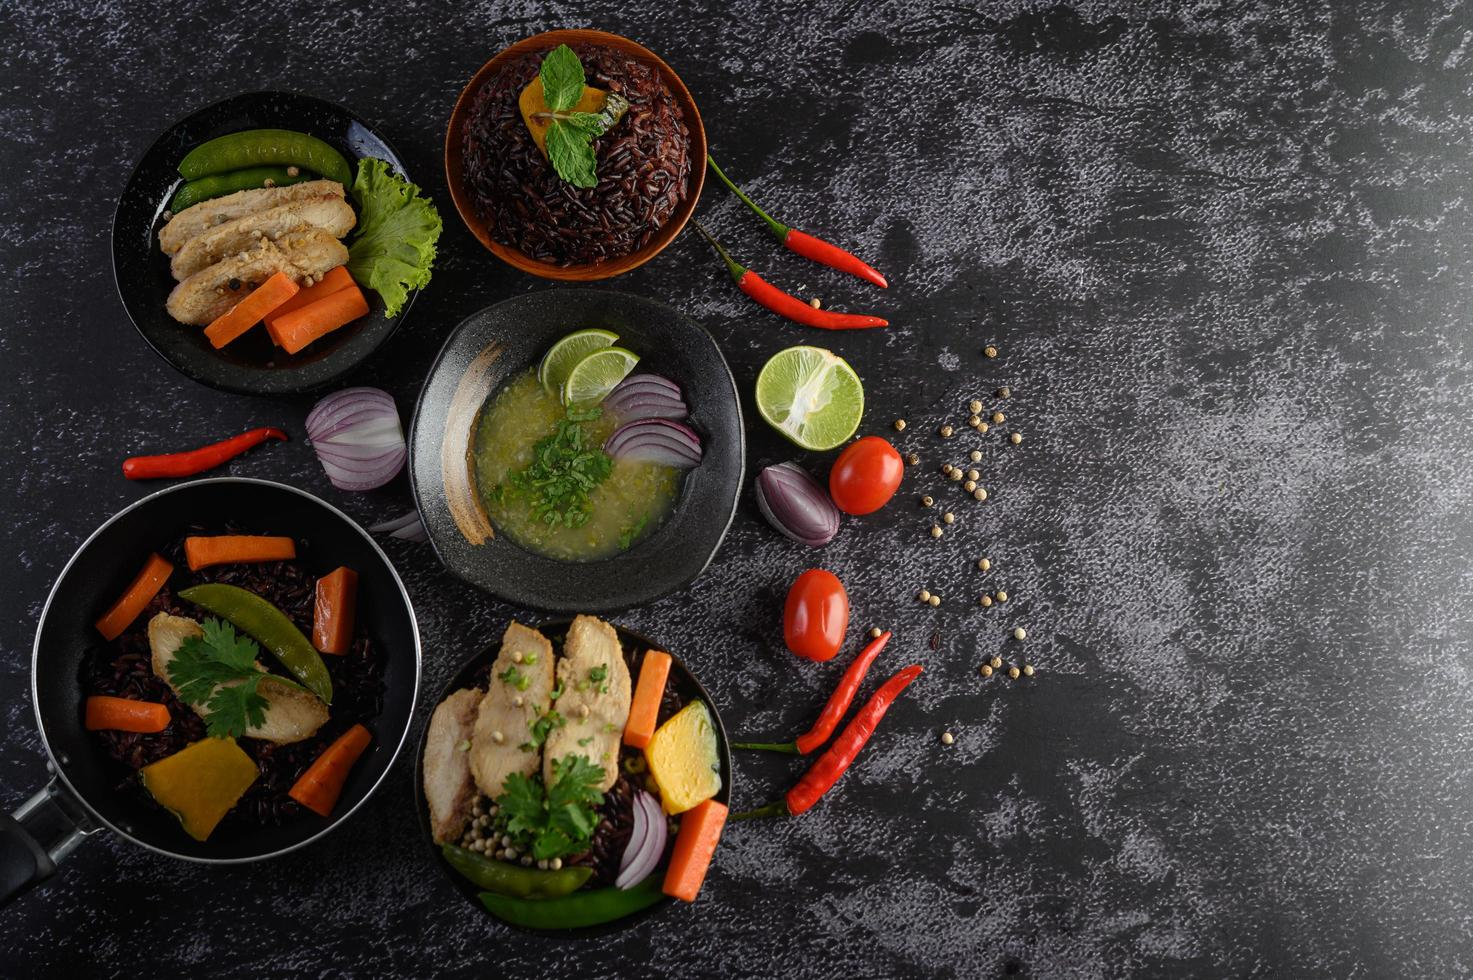 Assorted dishes of vegetables, meat and fish on a black stone background photo